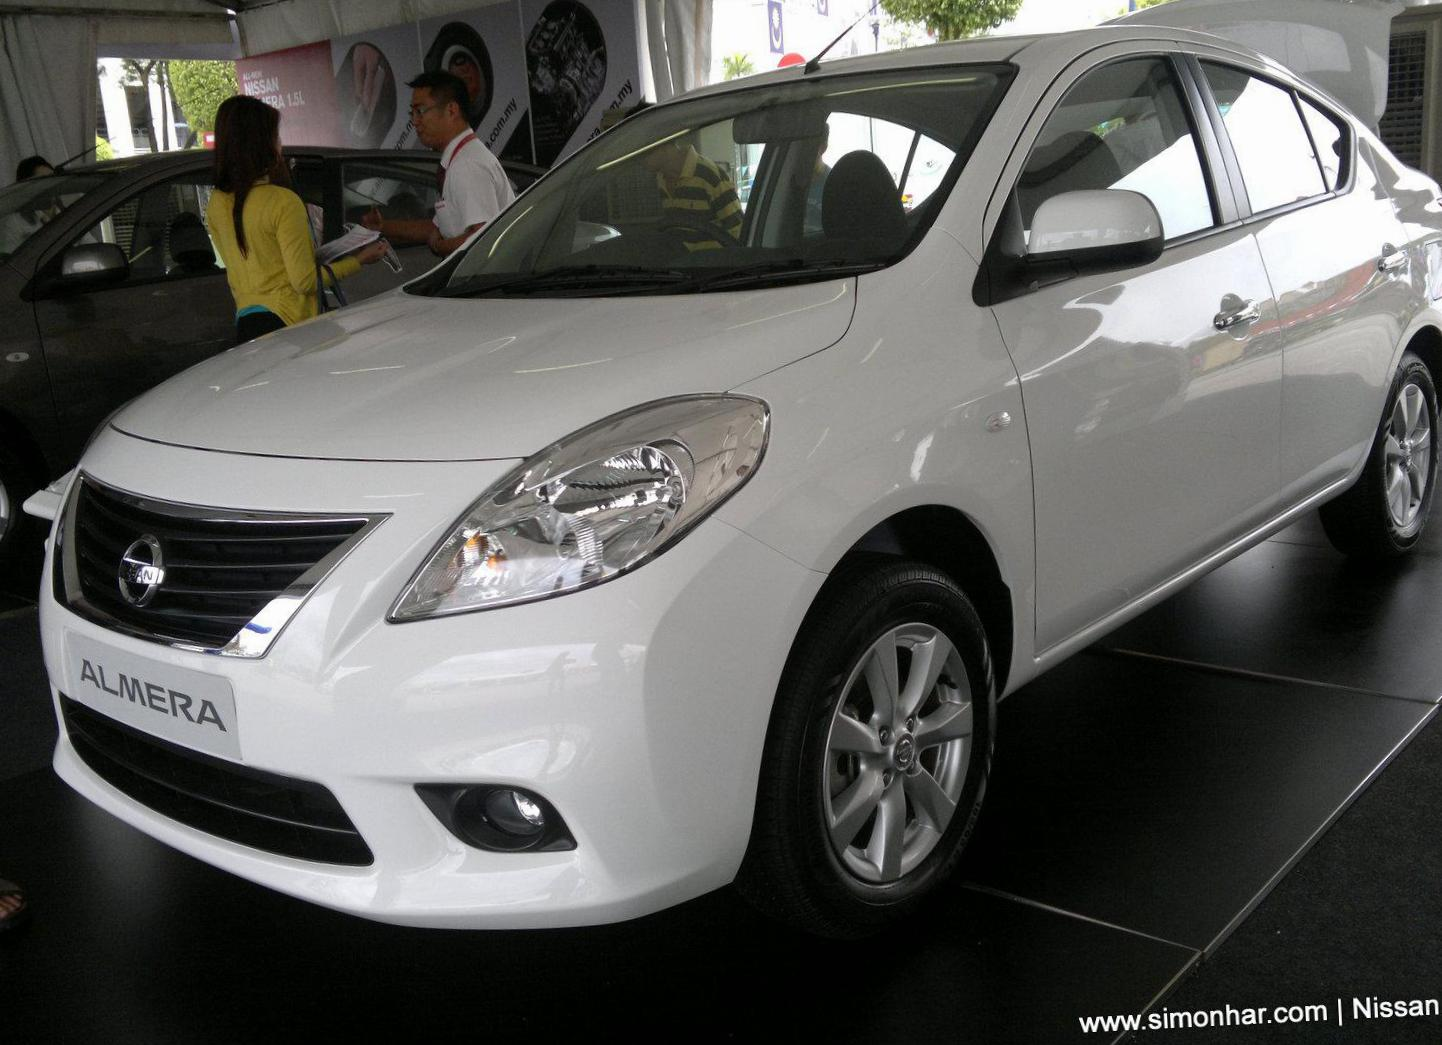 Nissan Almera reviews 2010